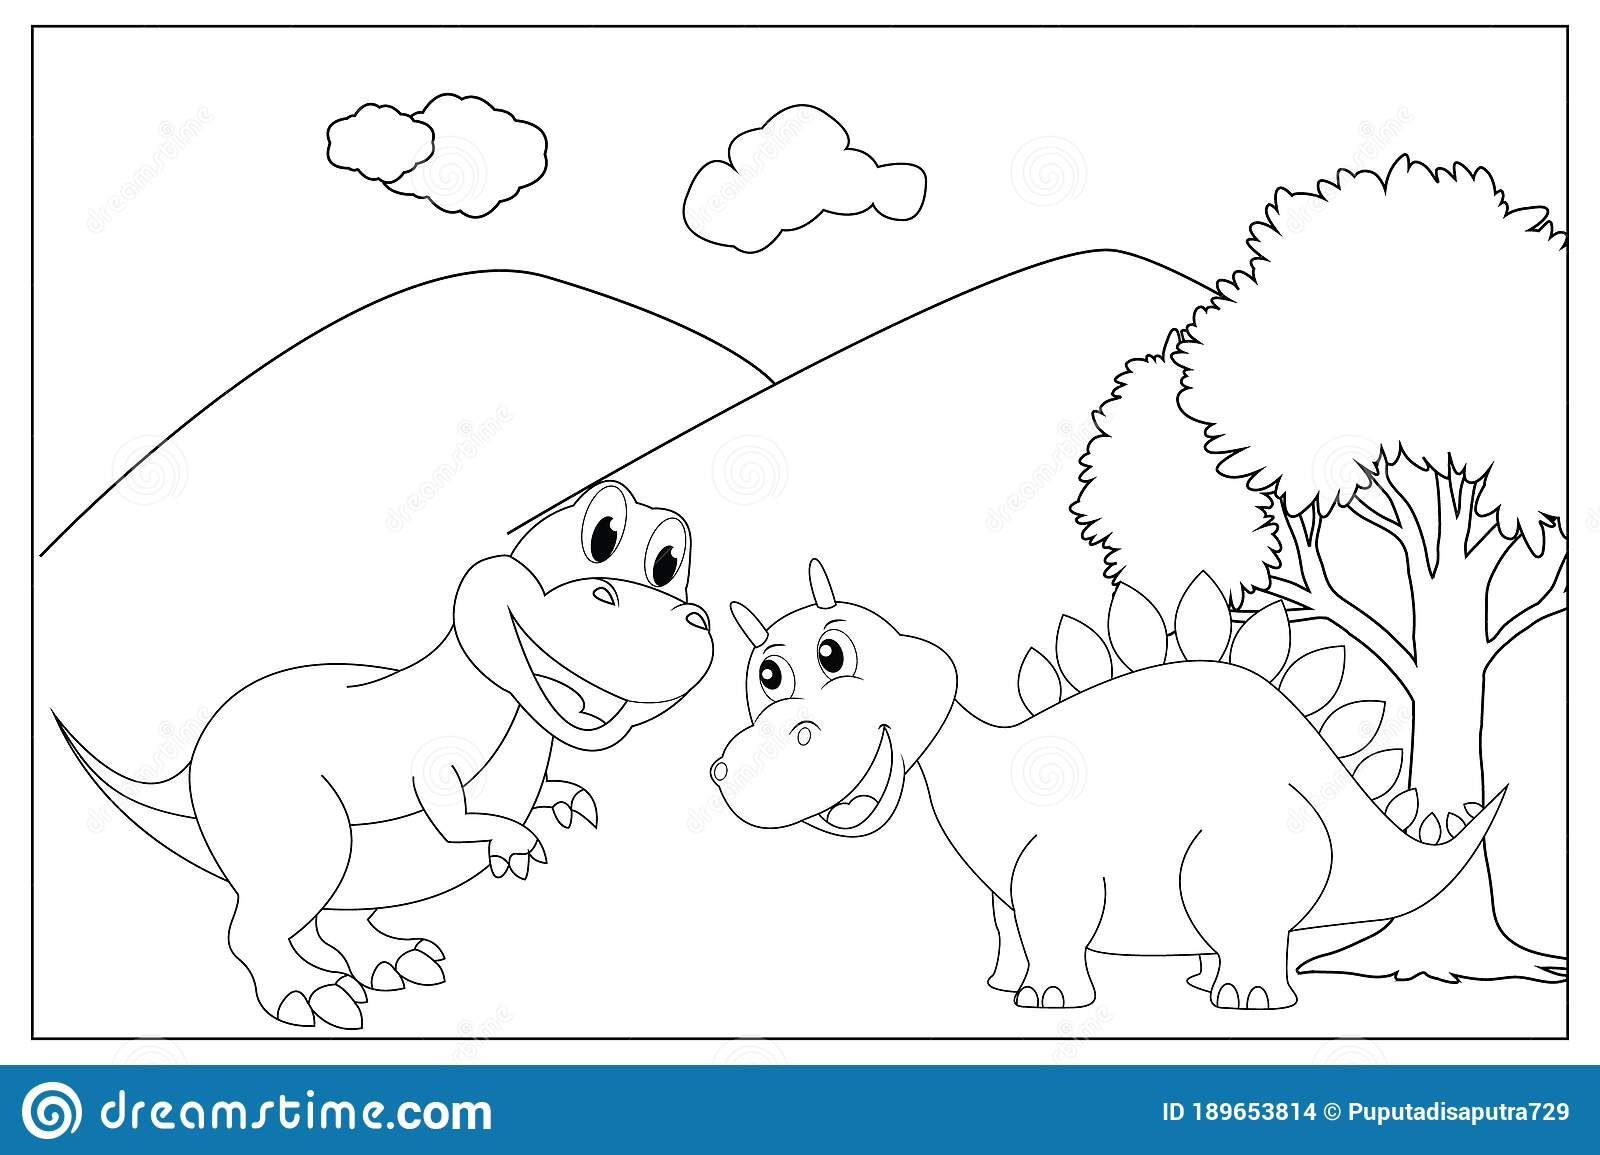 Coloring Pages For Kids With Cute Dinosaur Stock Vector Illustration Of Children Collection 189653814